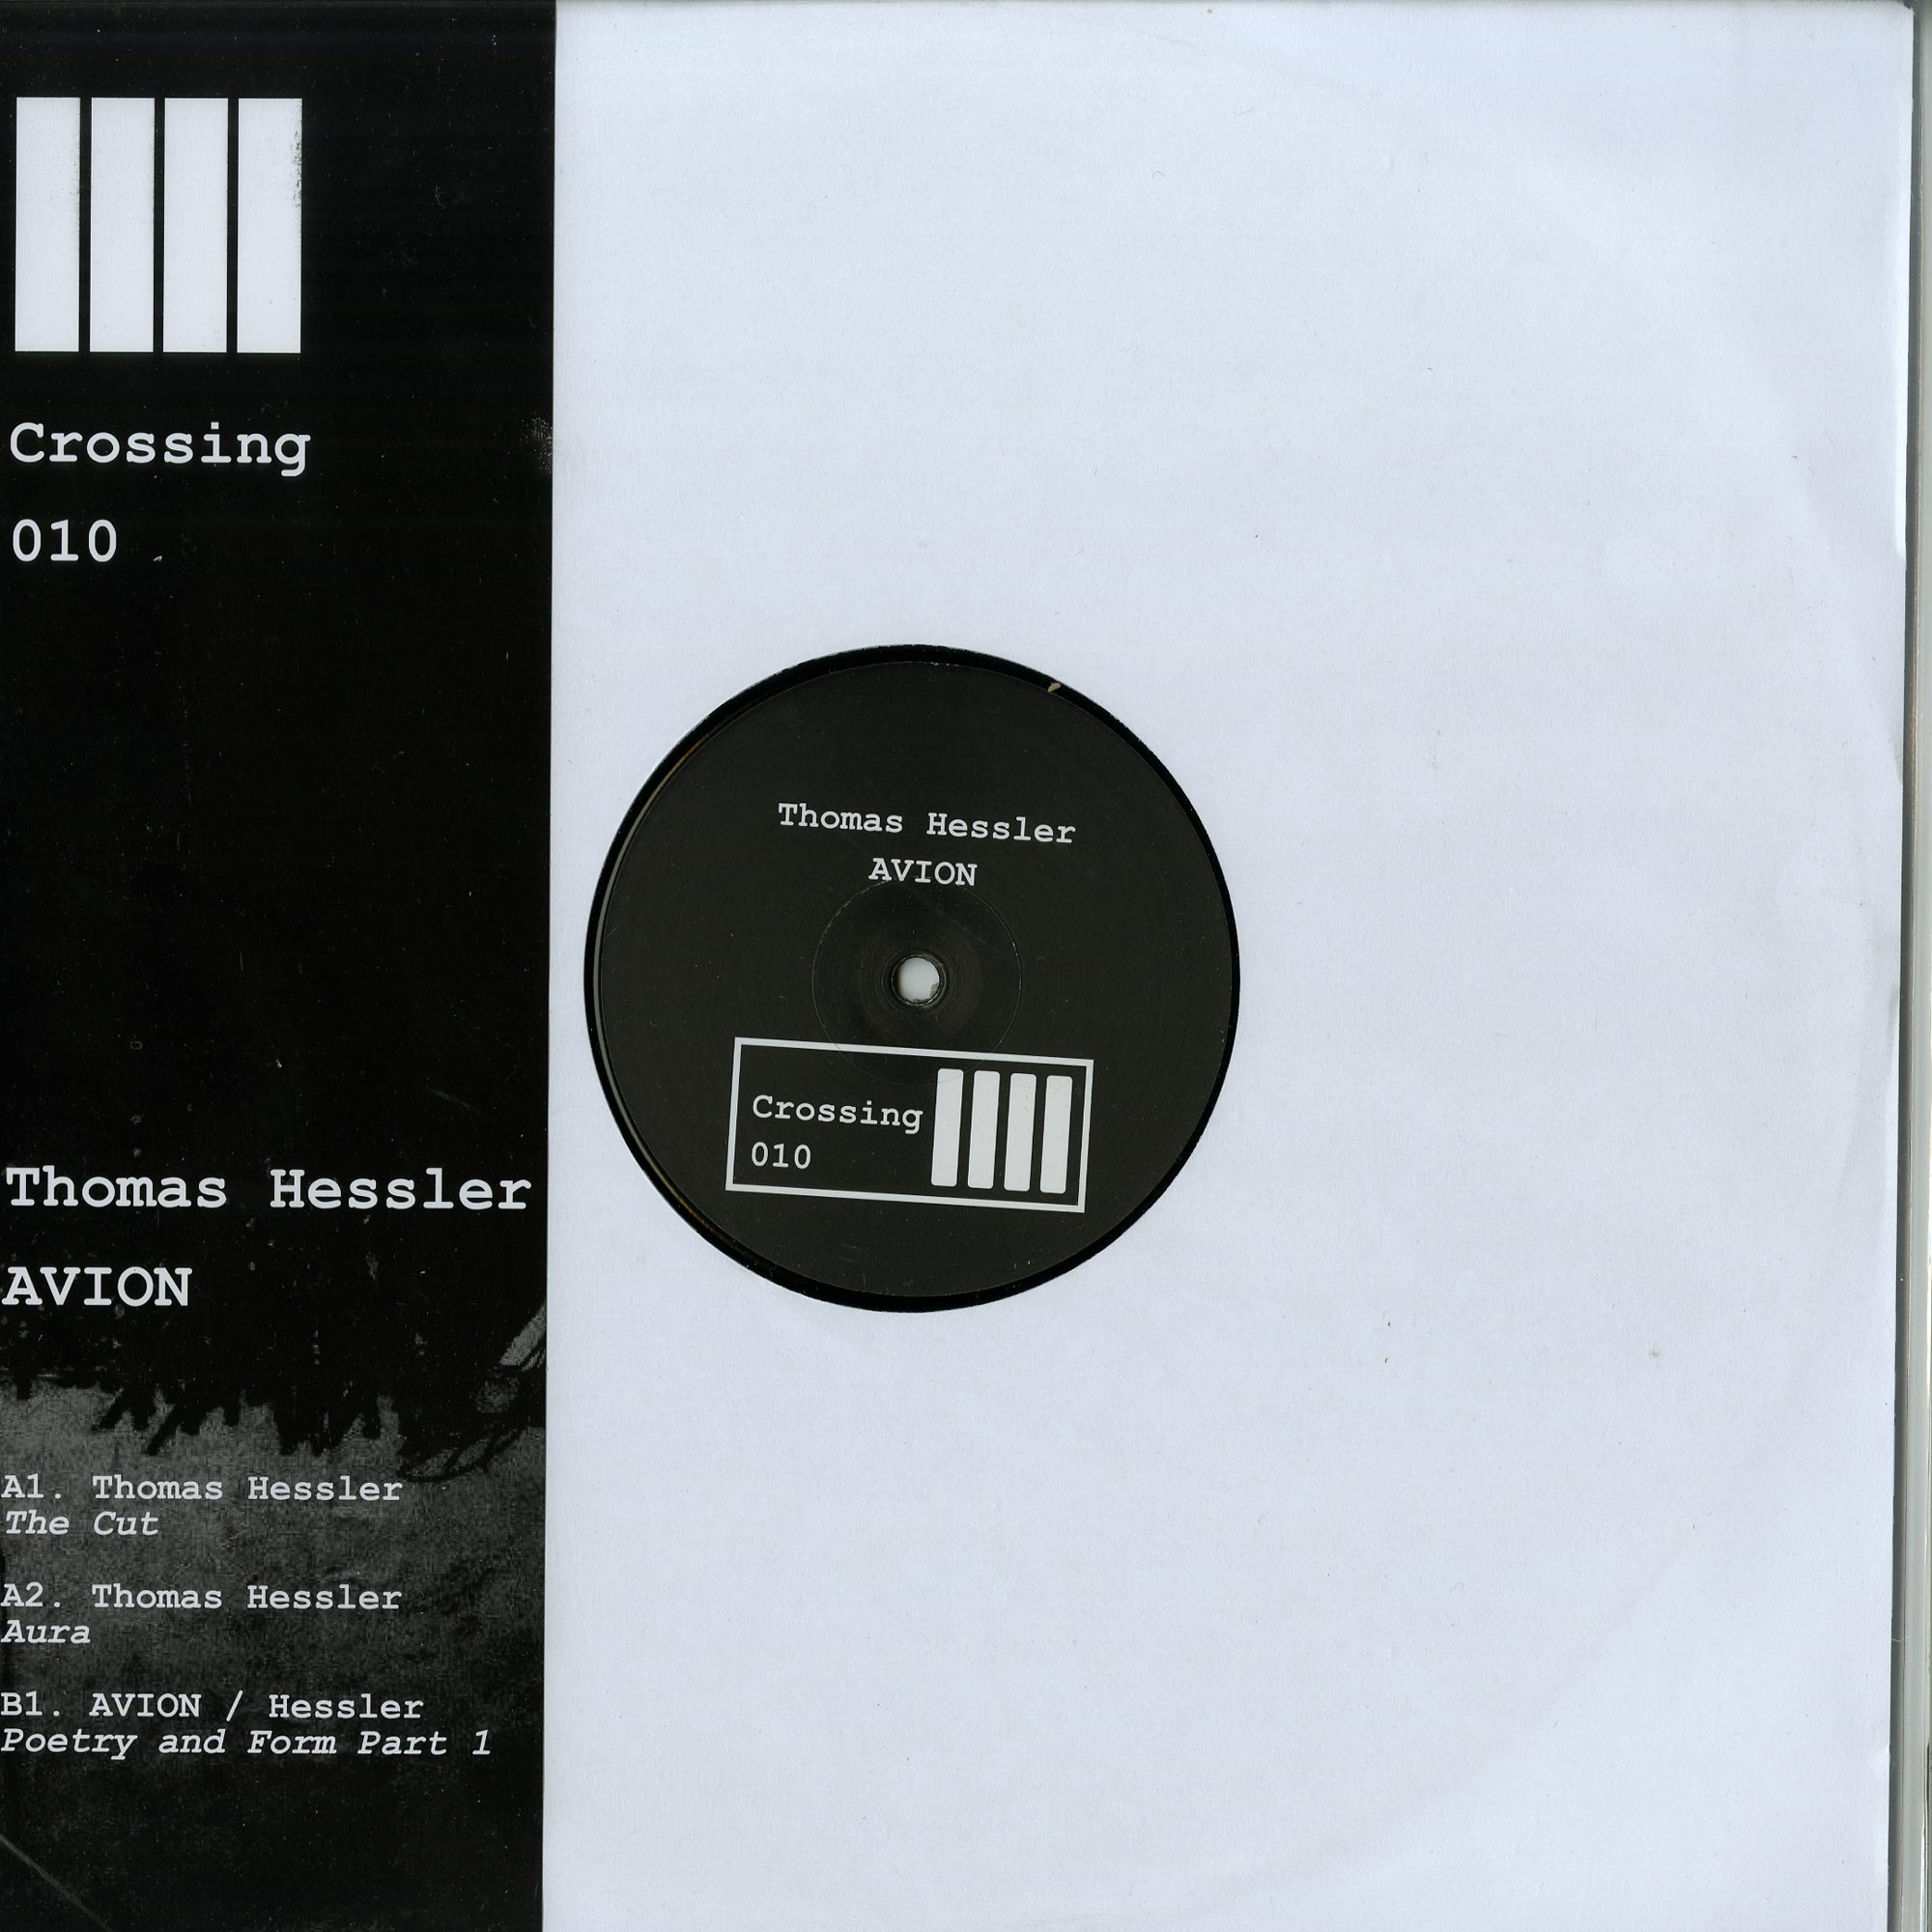 Thomas Hessler / AVION - CROSSING 010